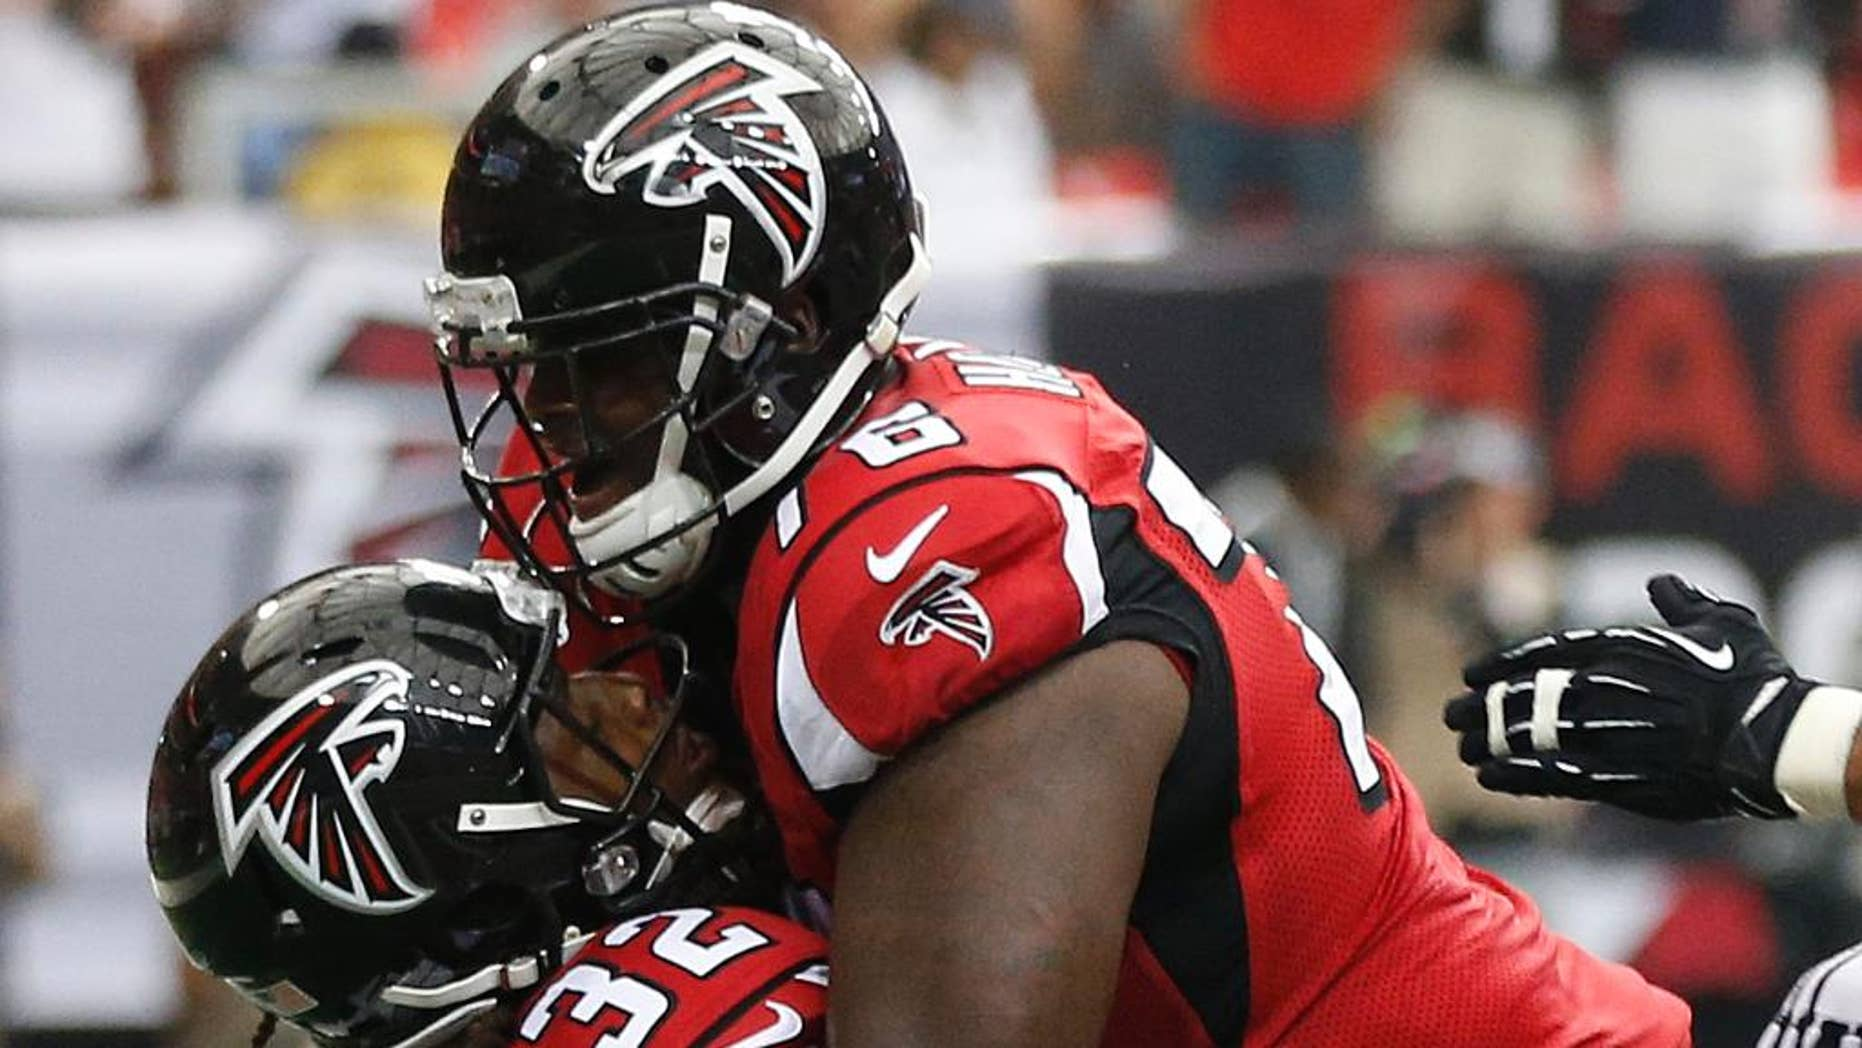 Atlanta Falcons tackle Lamar Holmes (76) embraces Atlanta Falcons running back Jacquizz Rodgers (32) after Rodgers scored a touchdown against the New Orleans Saints during the second half of an NFL football game, Sunday, Sept. 7, 2014, in Atlanta. (AP Photo/John Bazemore)